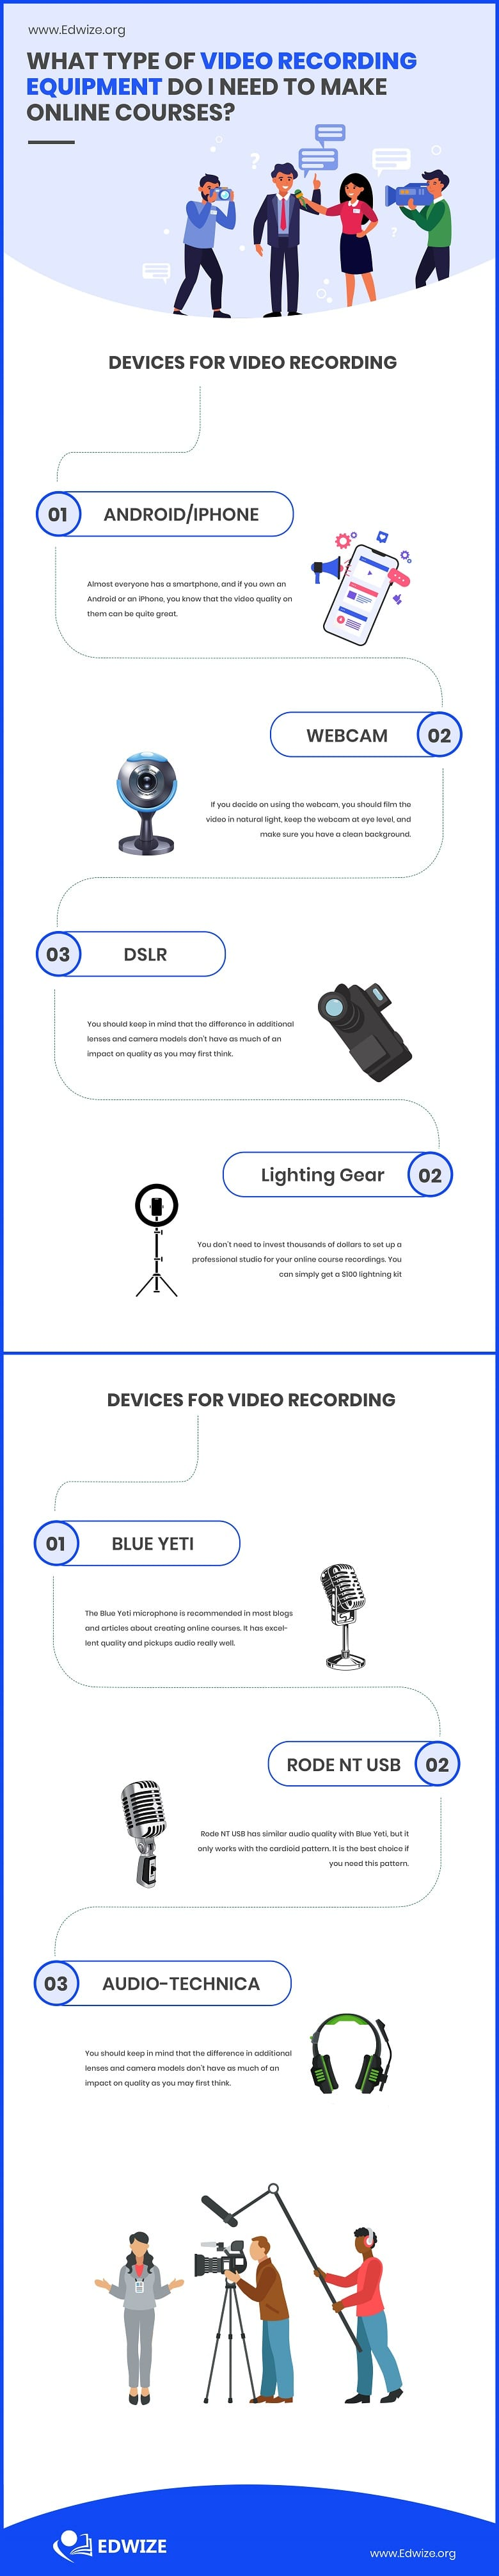 video recording equipment